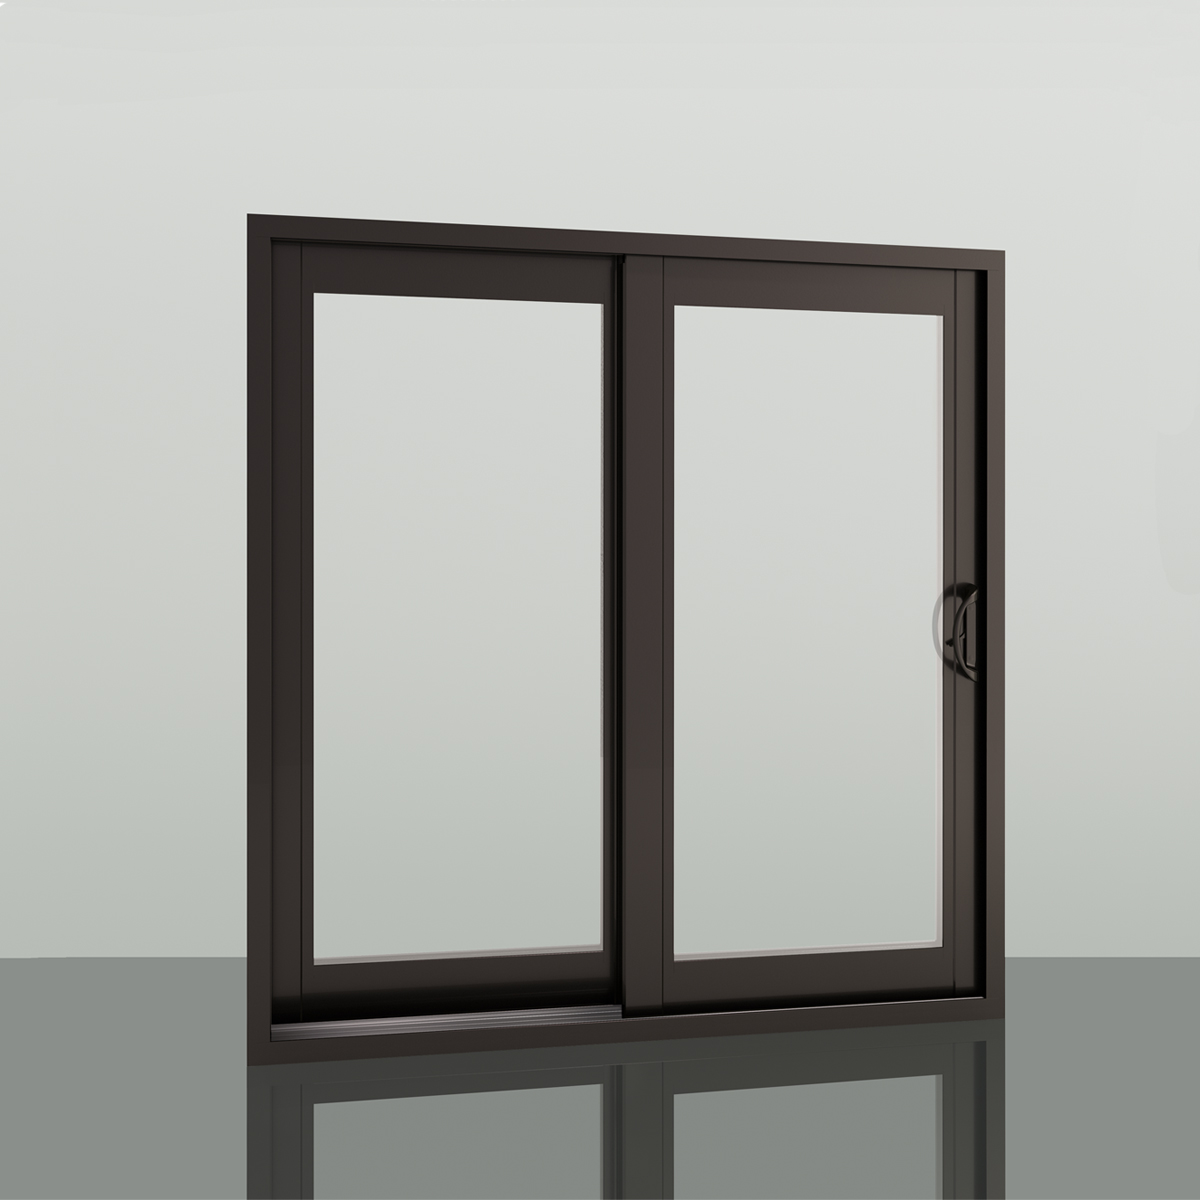 Kinds Of Sliding Glass Door: And Doors & Types Of Doors Sc 1 St Templates And Resumes